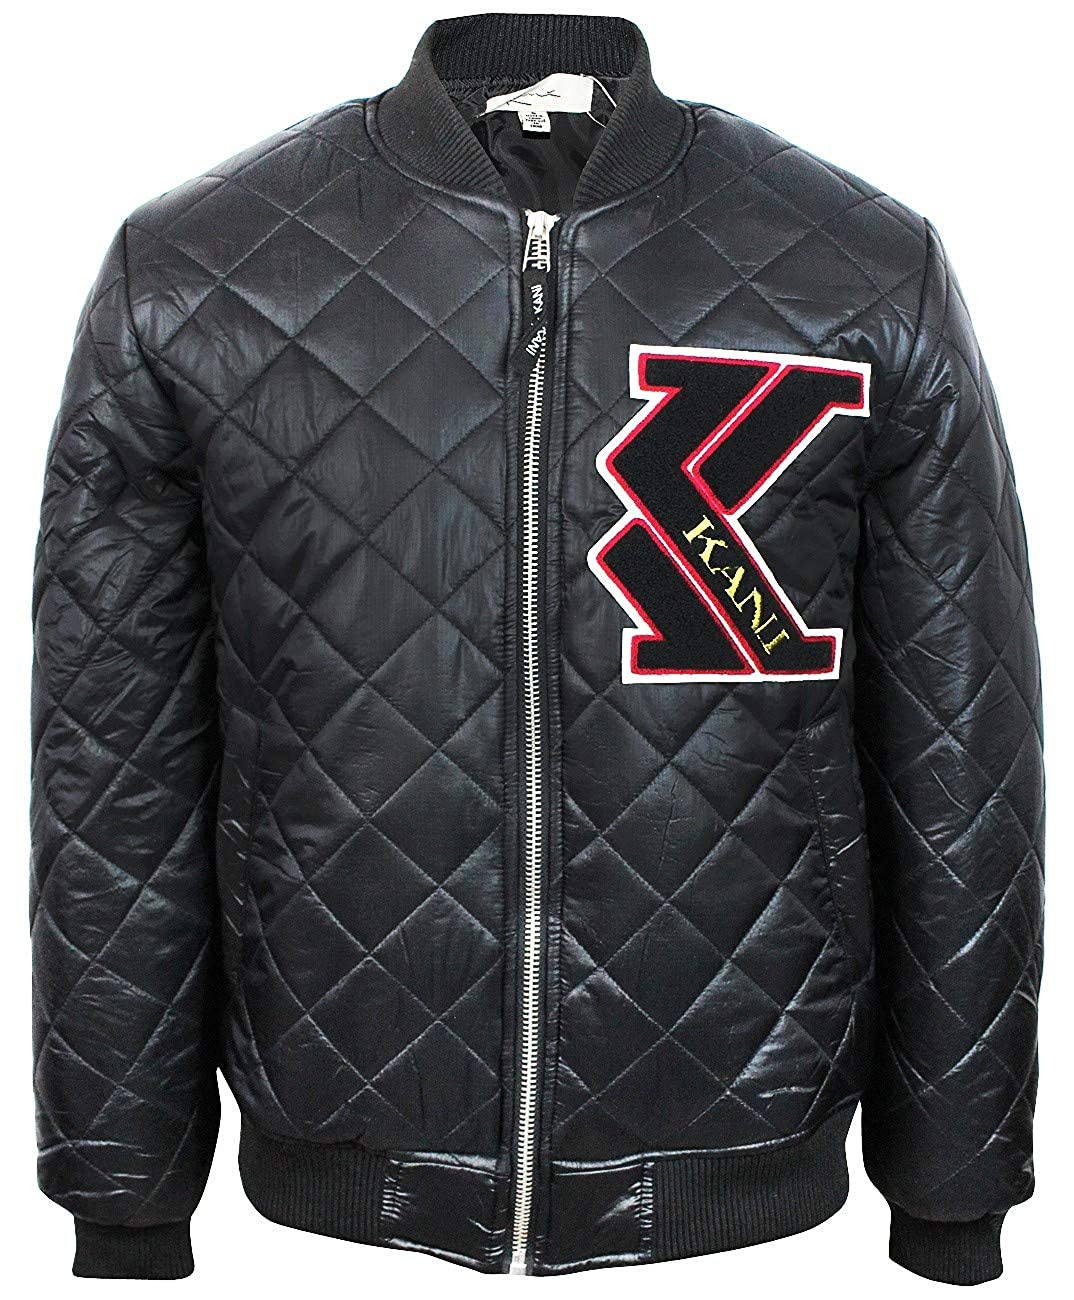 9795118fc Karl Kani Men's Quilted Insulated Zip up Jacket KK1709 Black at ...